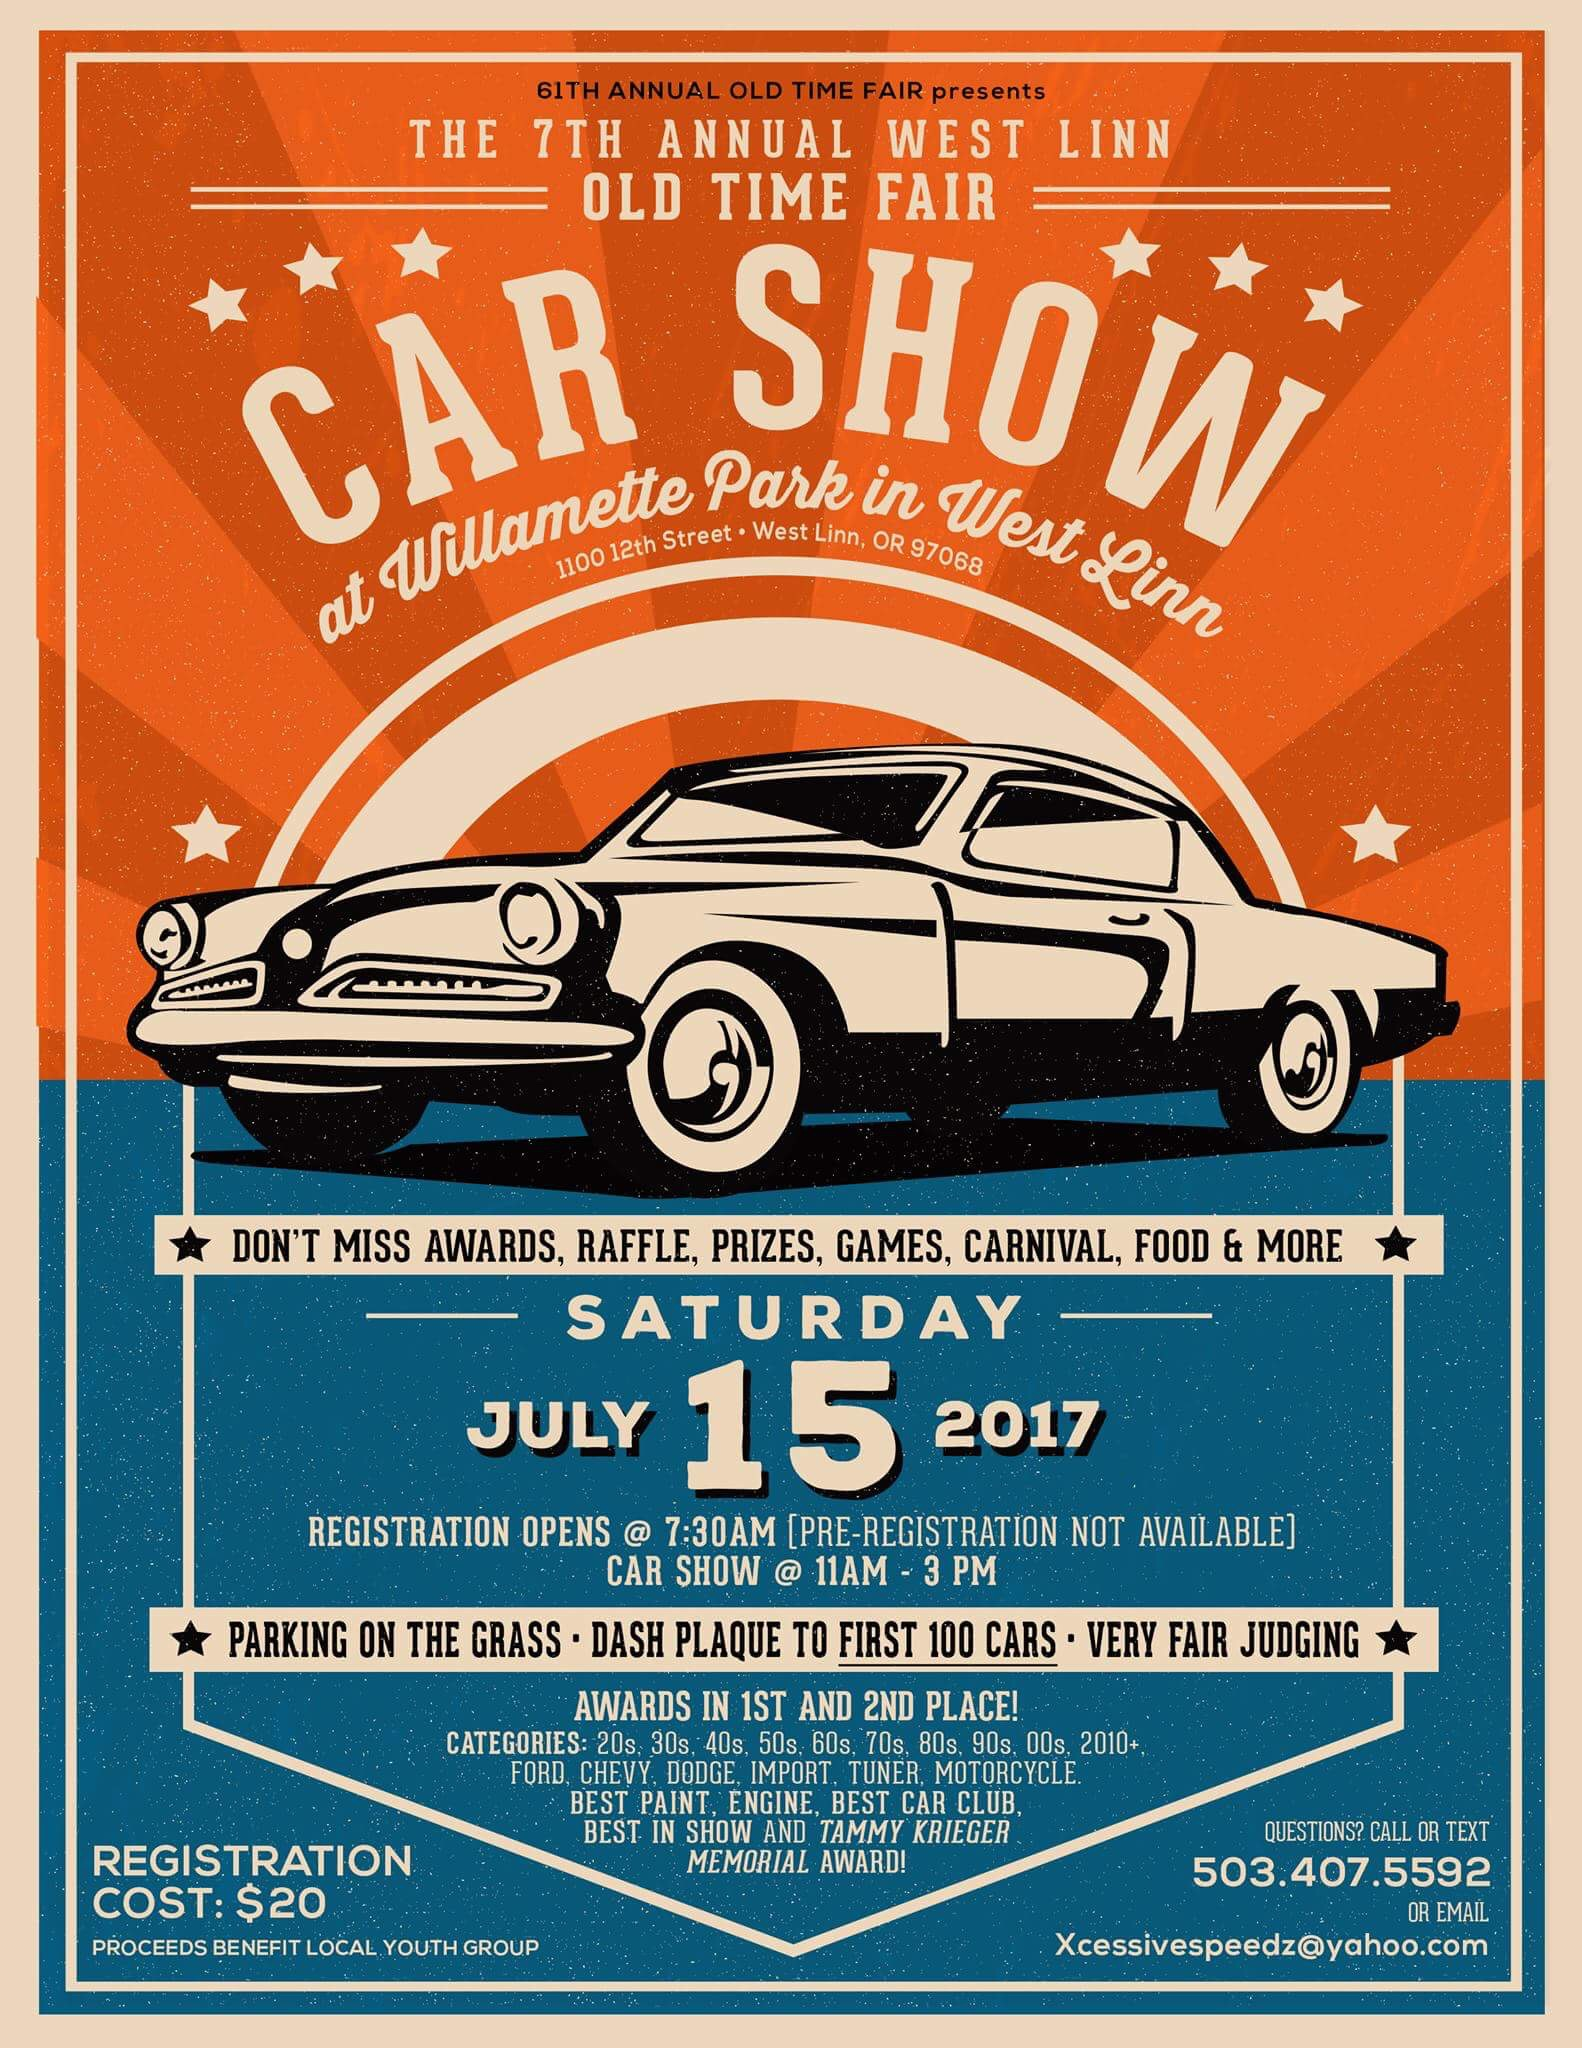 Car Show Information & Registration Form | City of West Linn ...